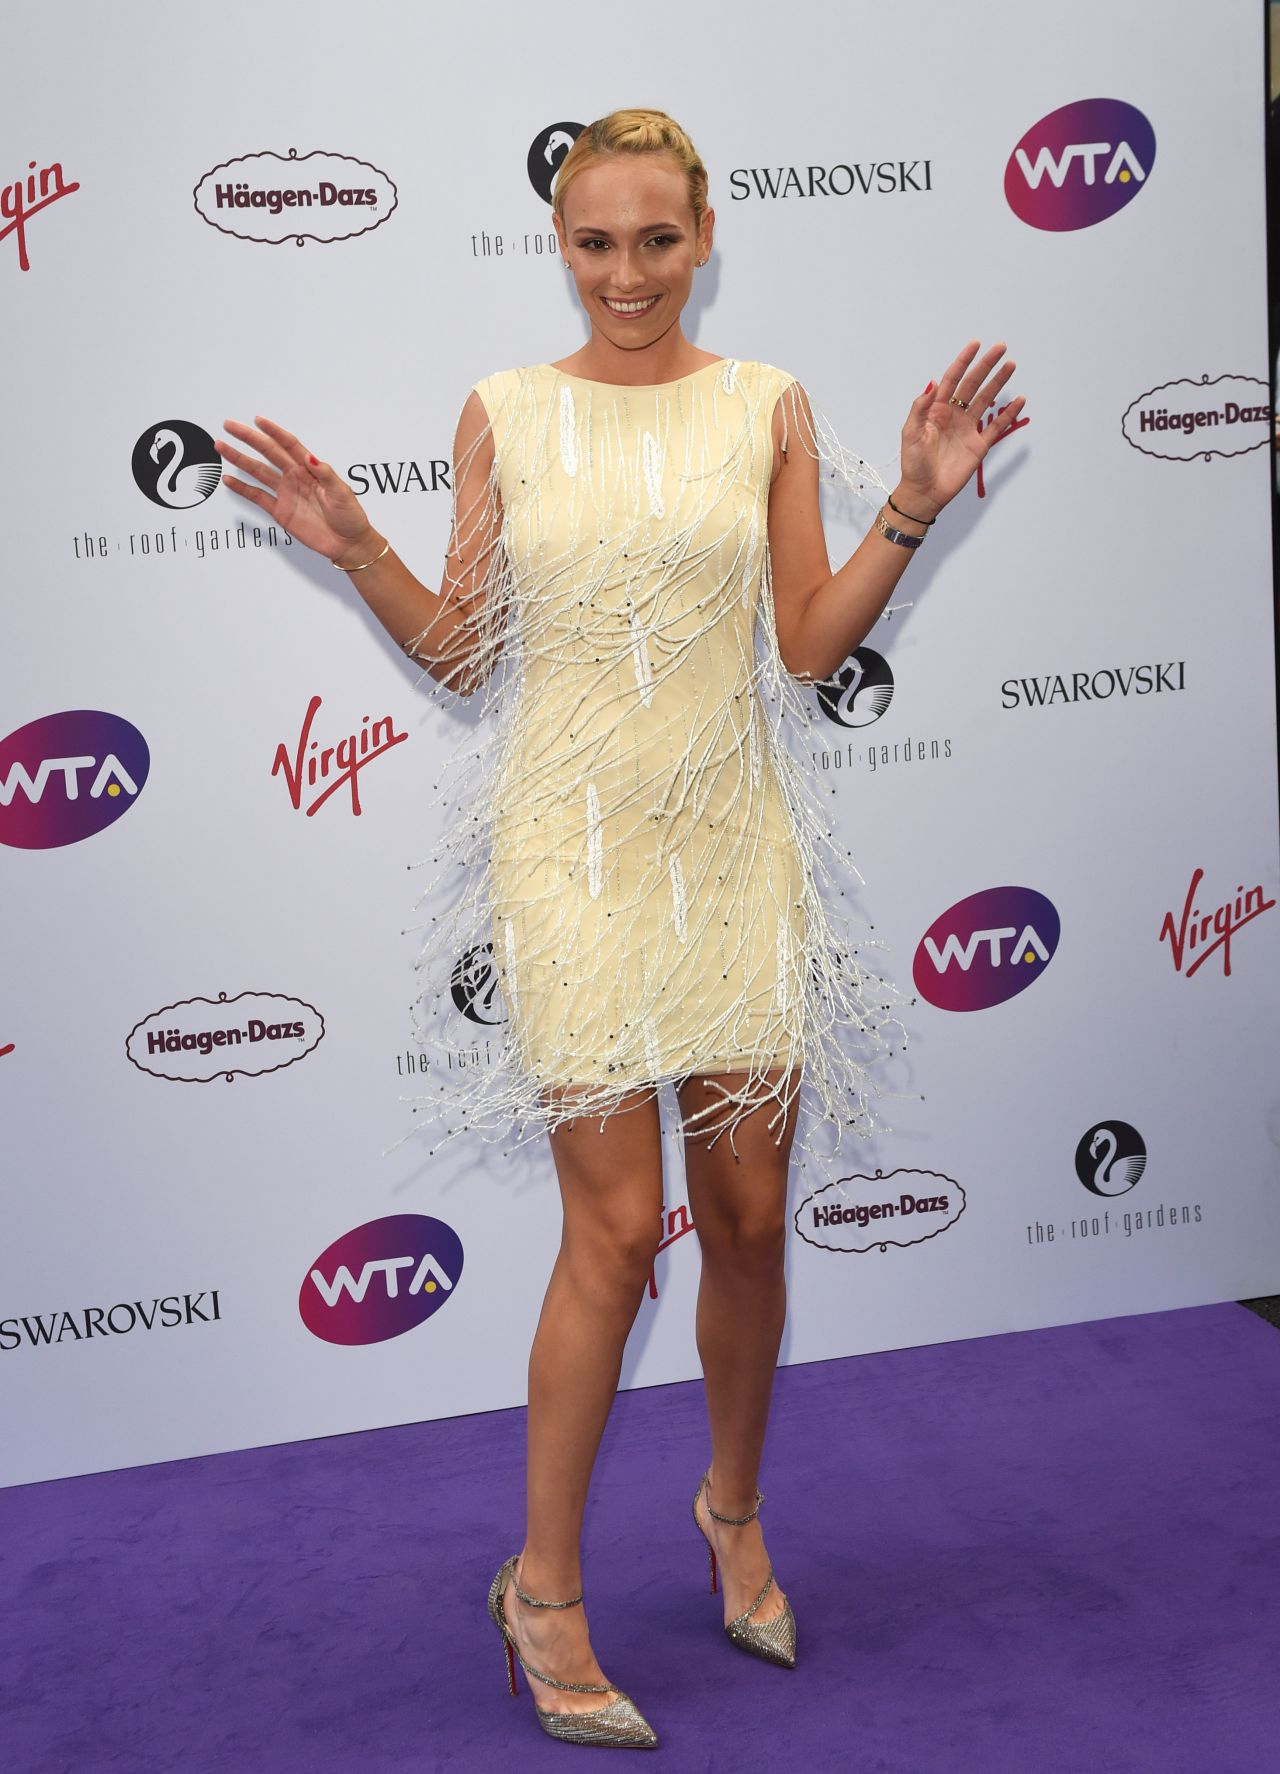 Donna Vekic Wta Pre Wimbledon Party In London 06 29 2017